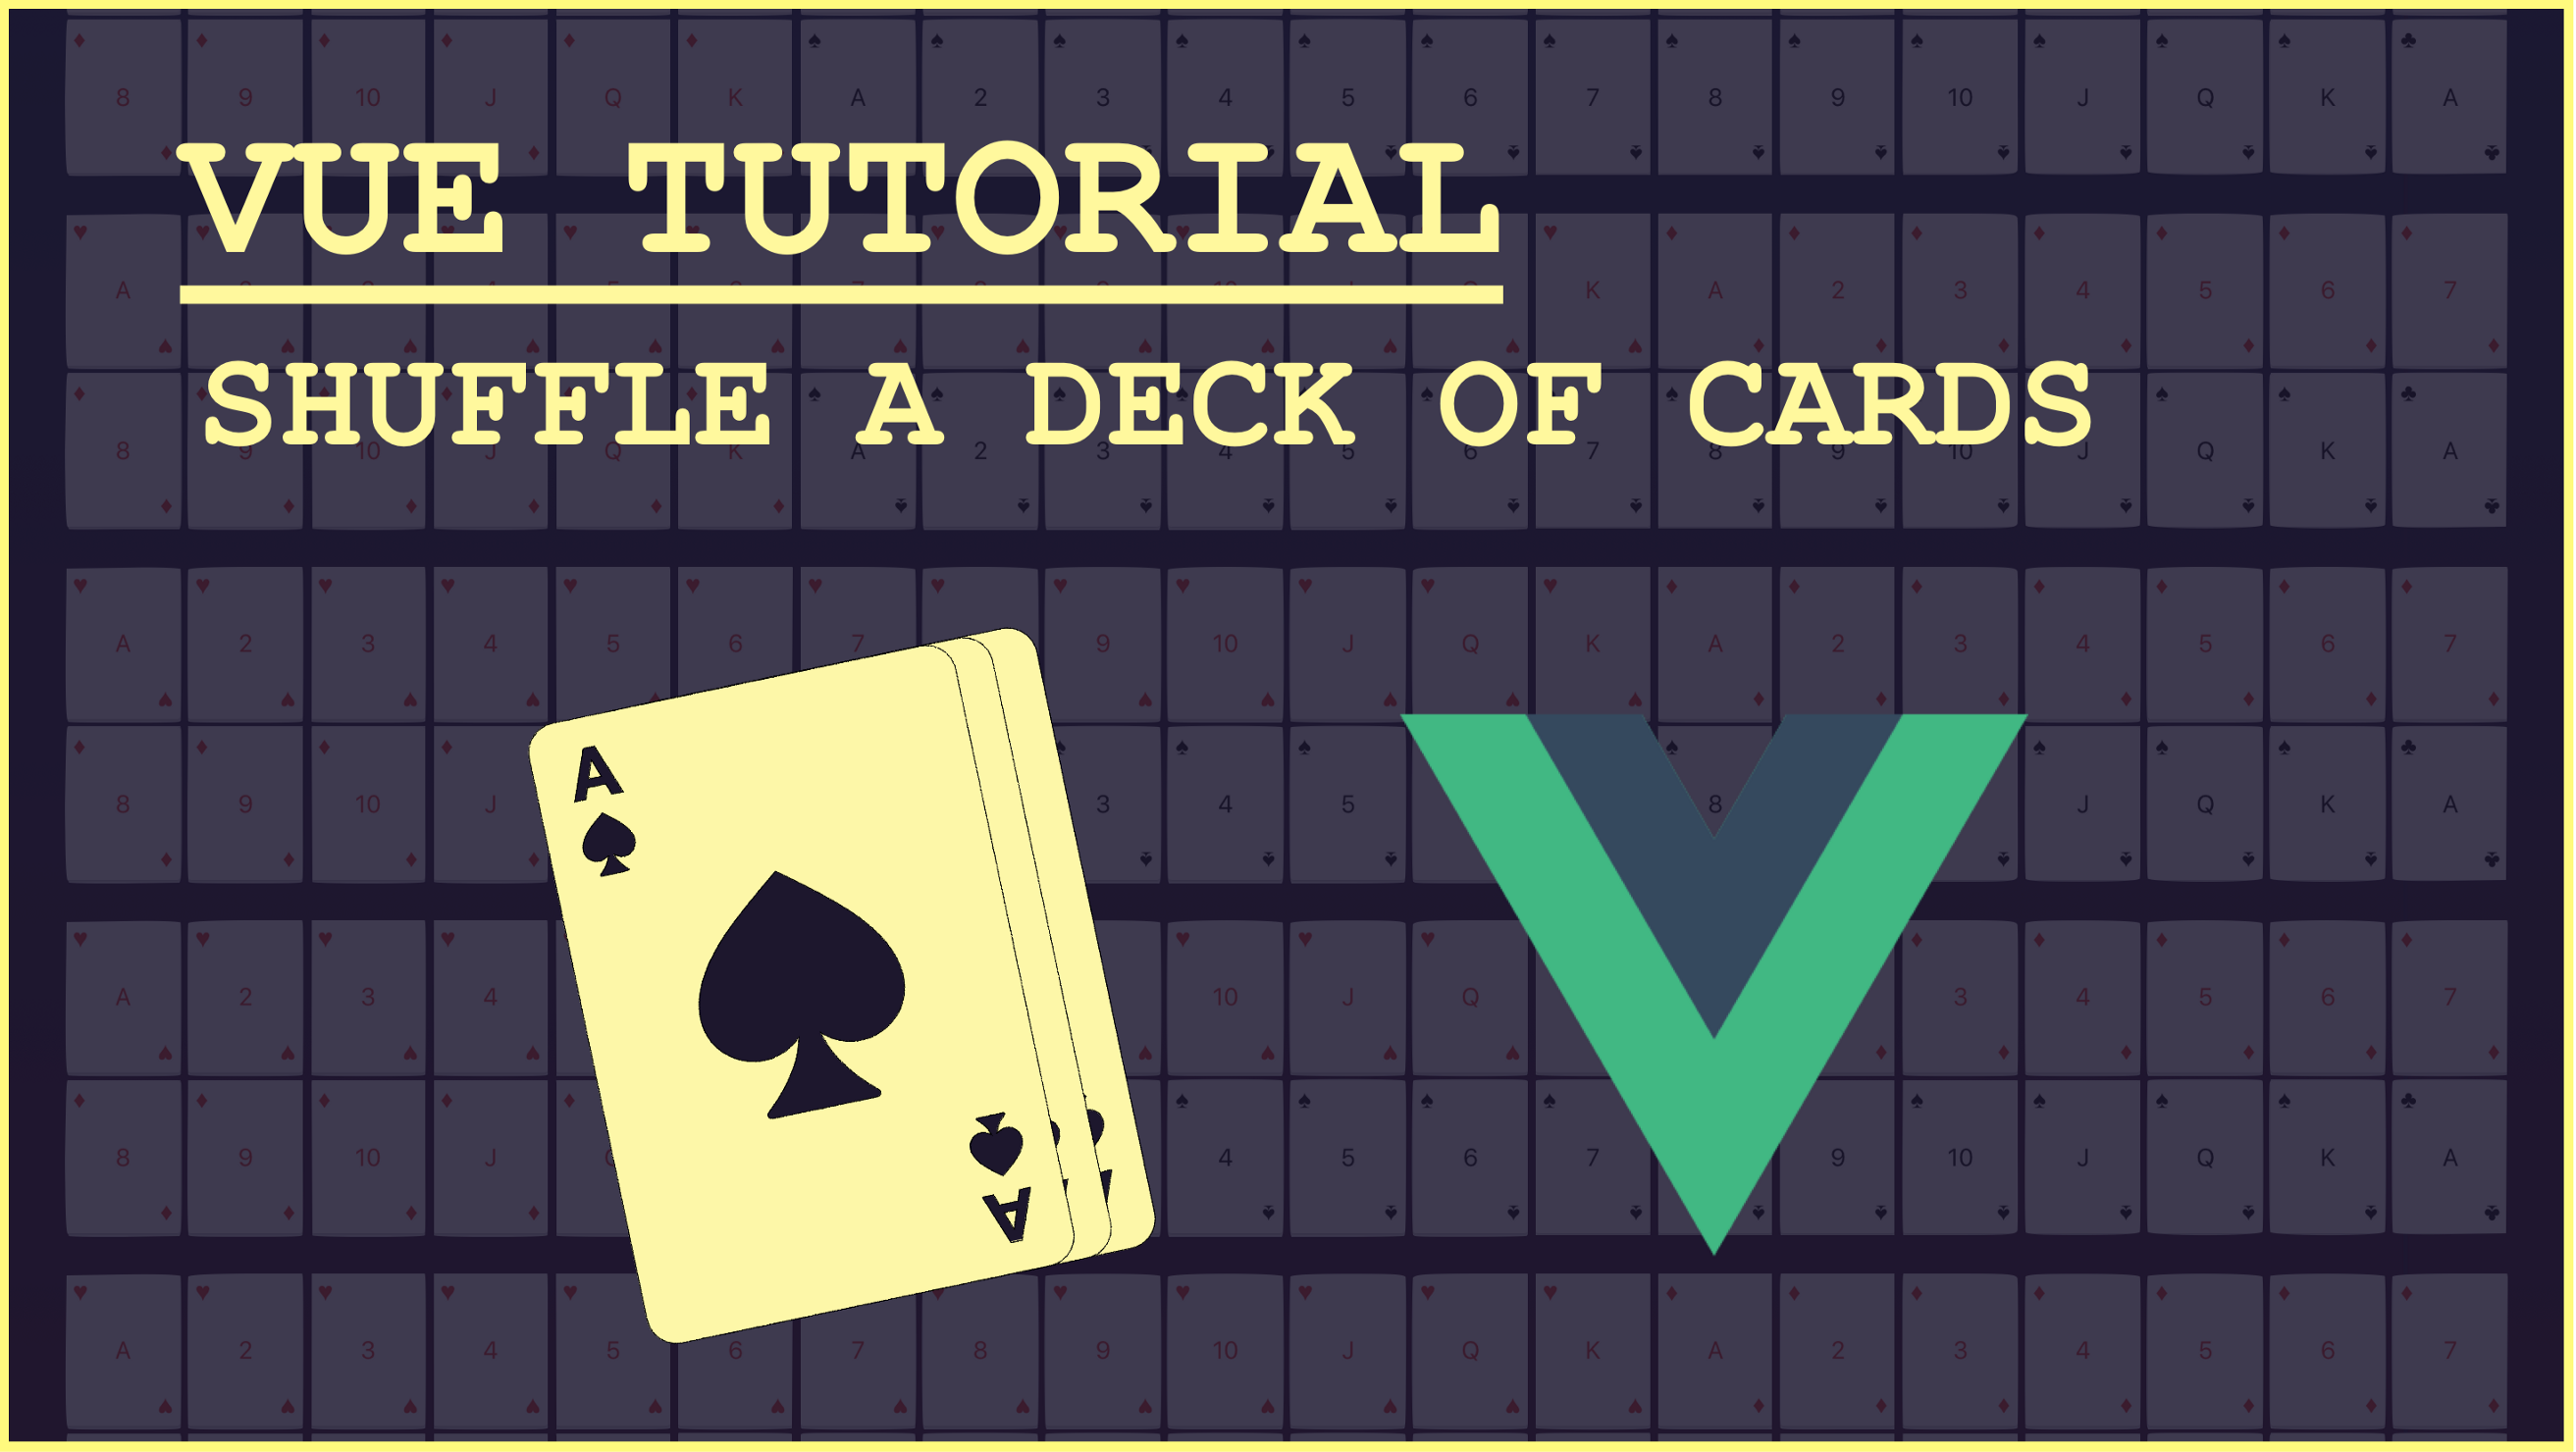 Tutorial - Shuffle a Deck of Cards in Vue js - Fullstack io - Medium